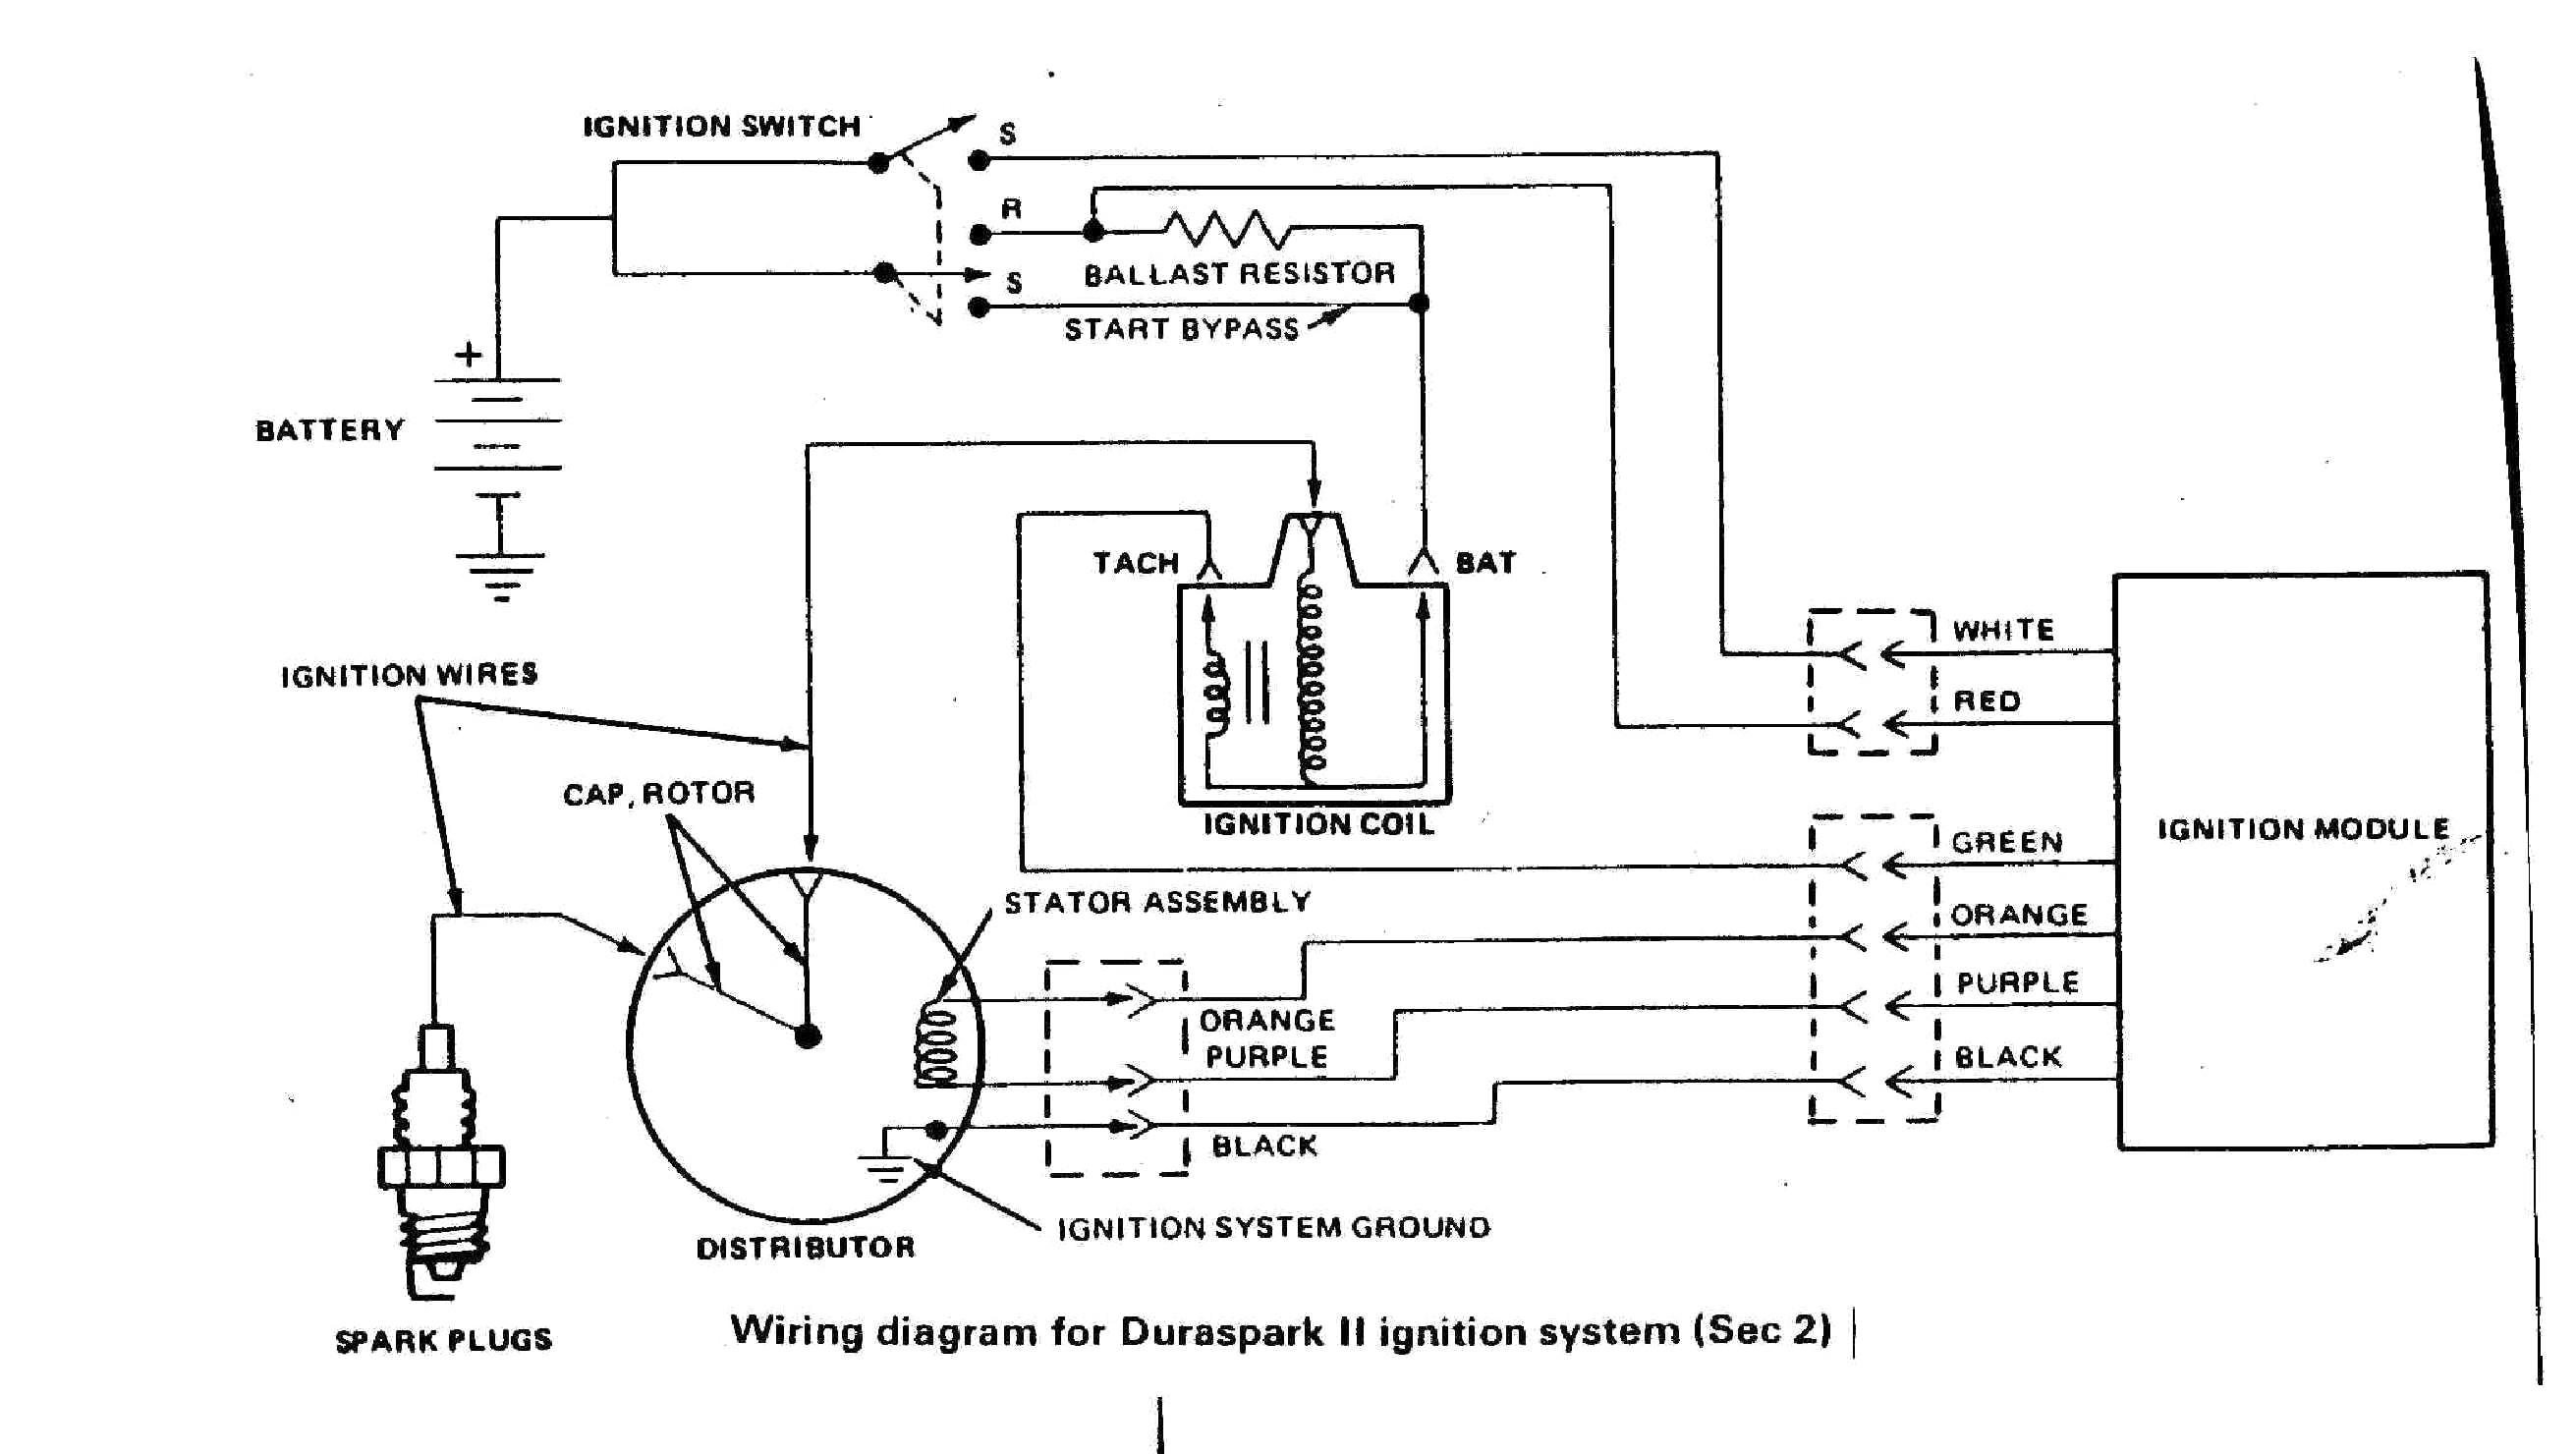 ford tractor ignition switch wiring diagram Collection-ford tractor ignition switch wiring diagram Collection Ford Tractor Ignition Switch Wiring Diagram Unique ford 16-h